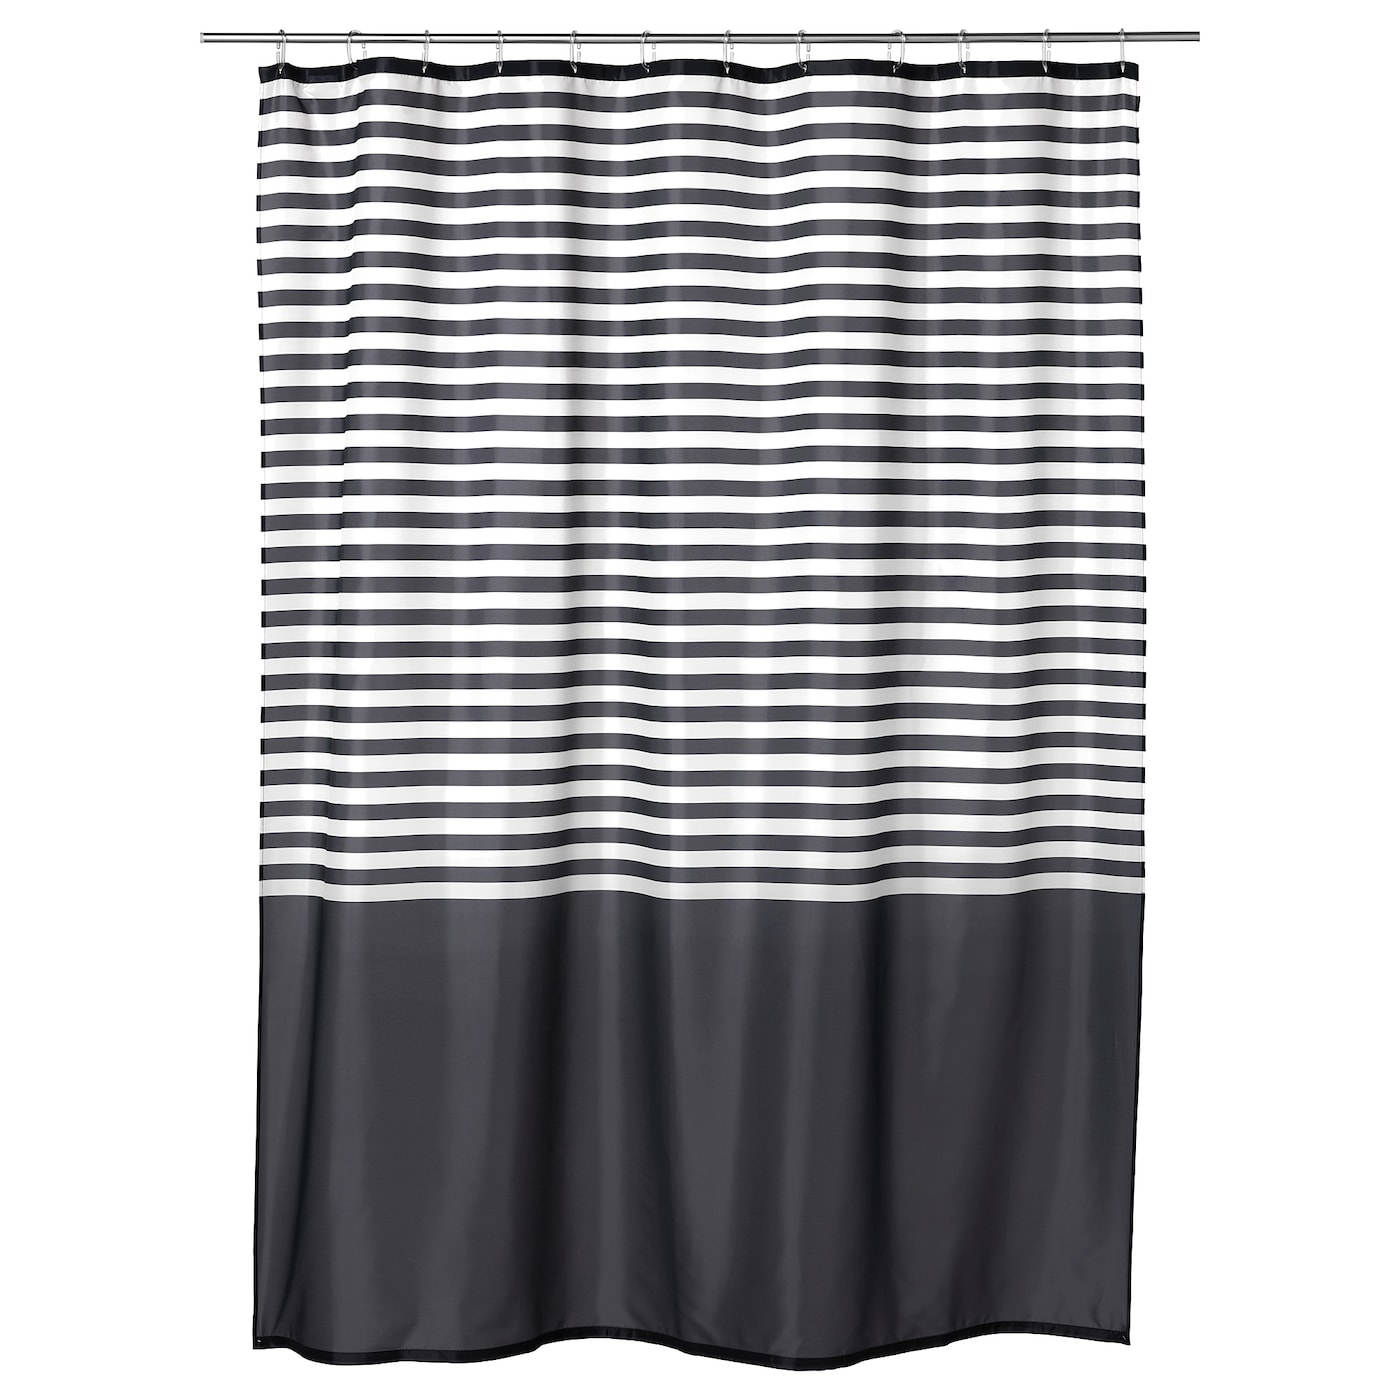 IKEA VADSJON Shower Curtain Densely Woven Polyester Fabric With Water Repellent Coating